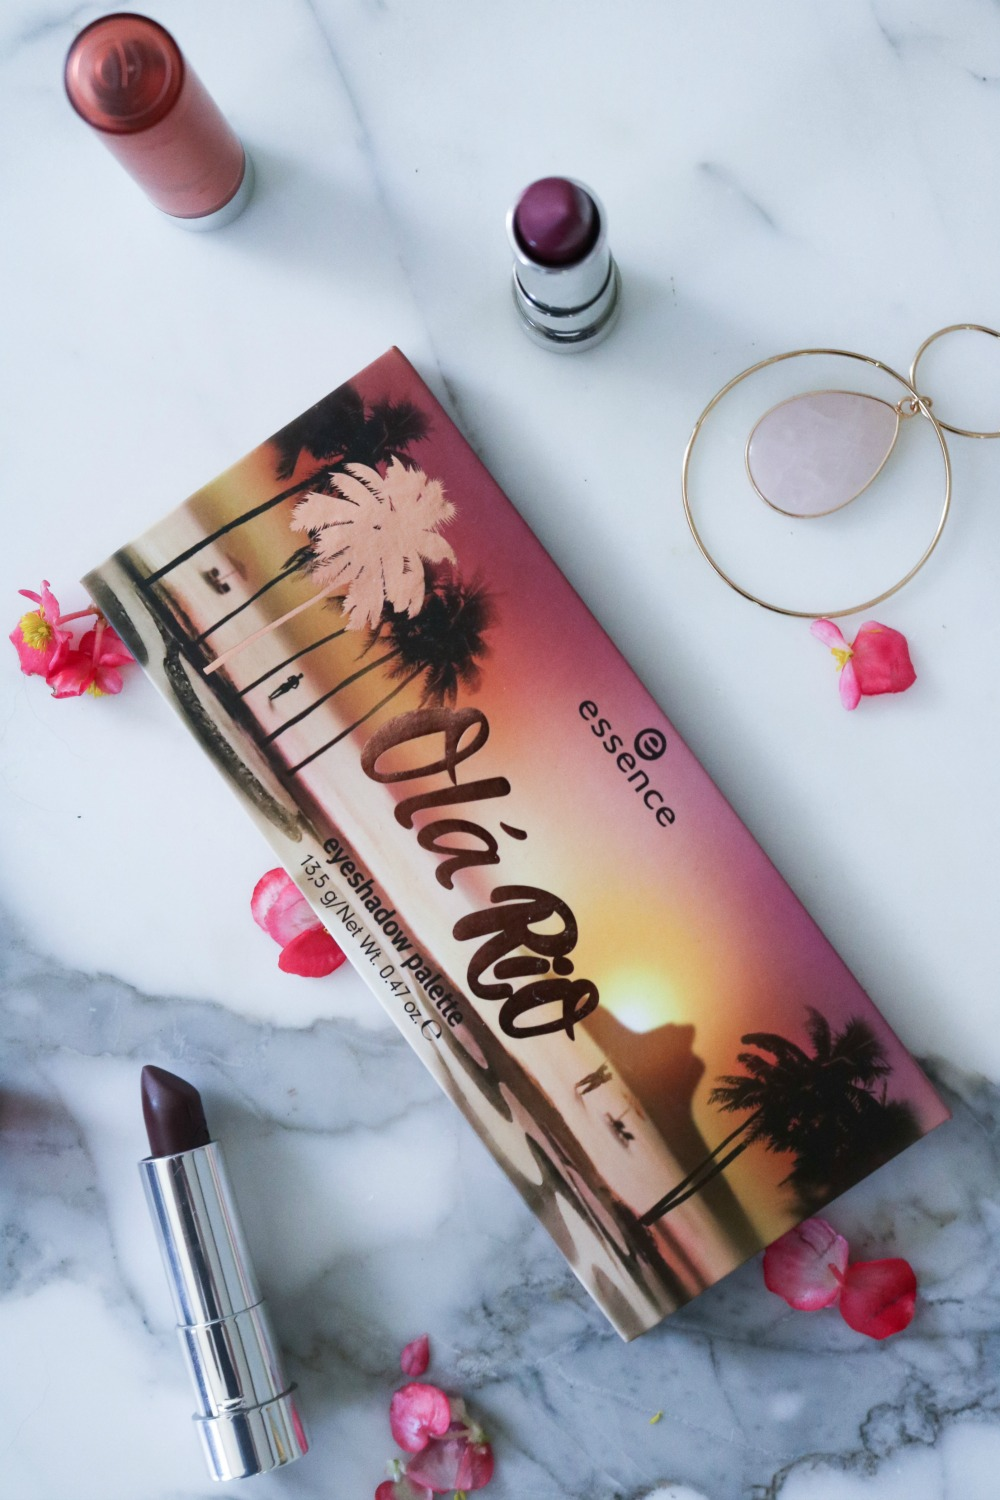 Essence Ola Rio Eyeshadow Palette Review I DreaminLace.com #DrugstoreMakeup #BeautyBlogger